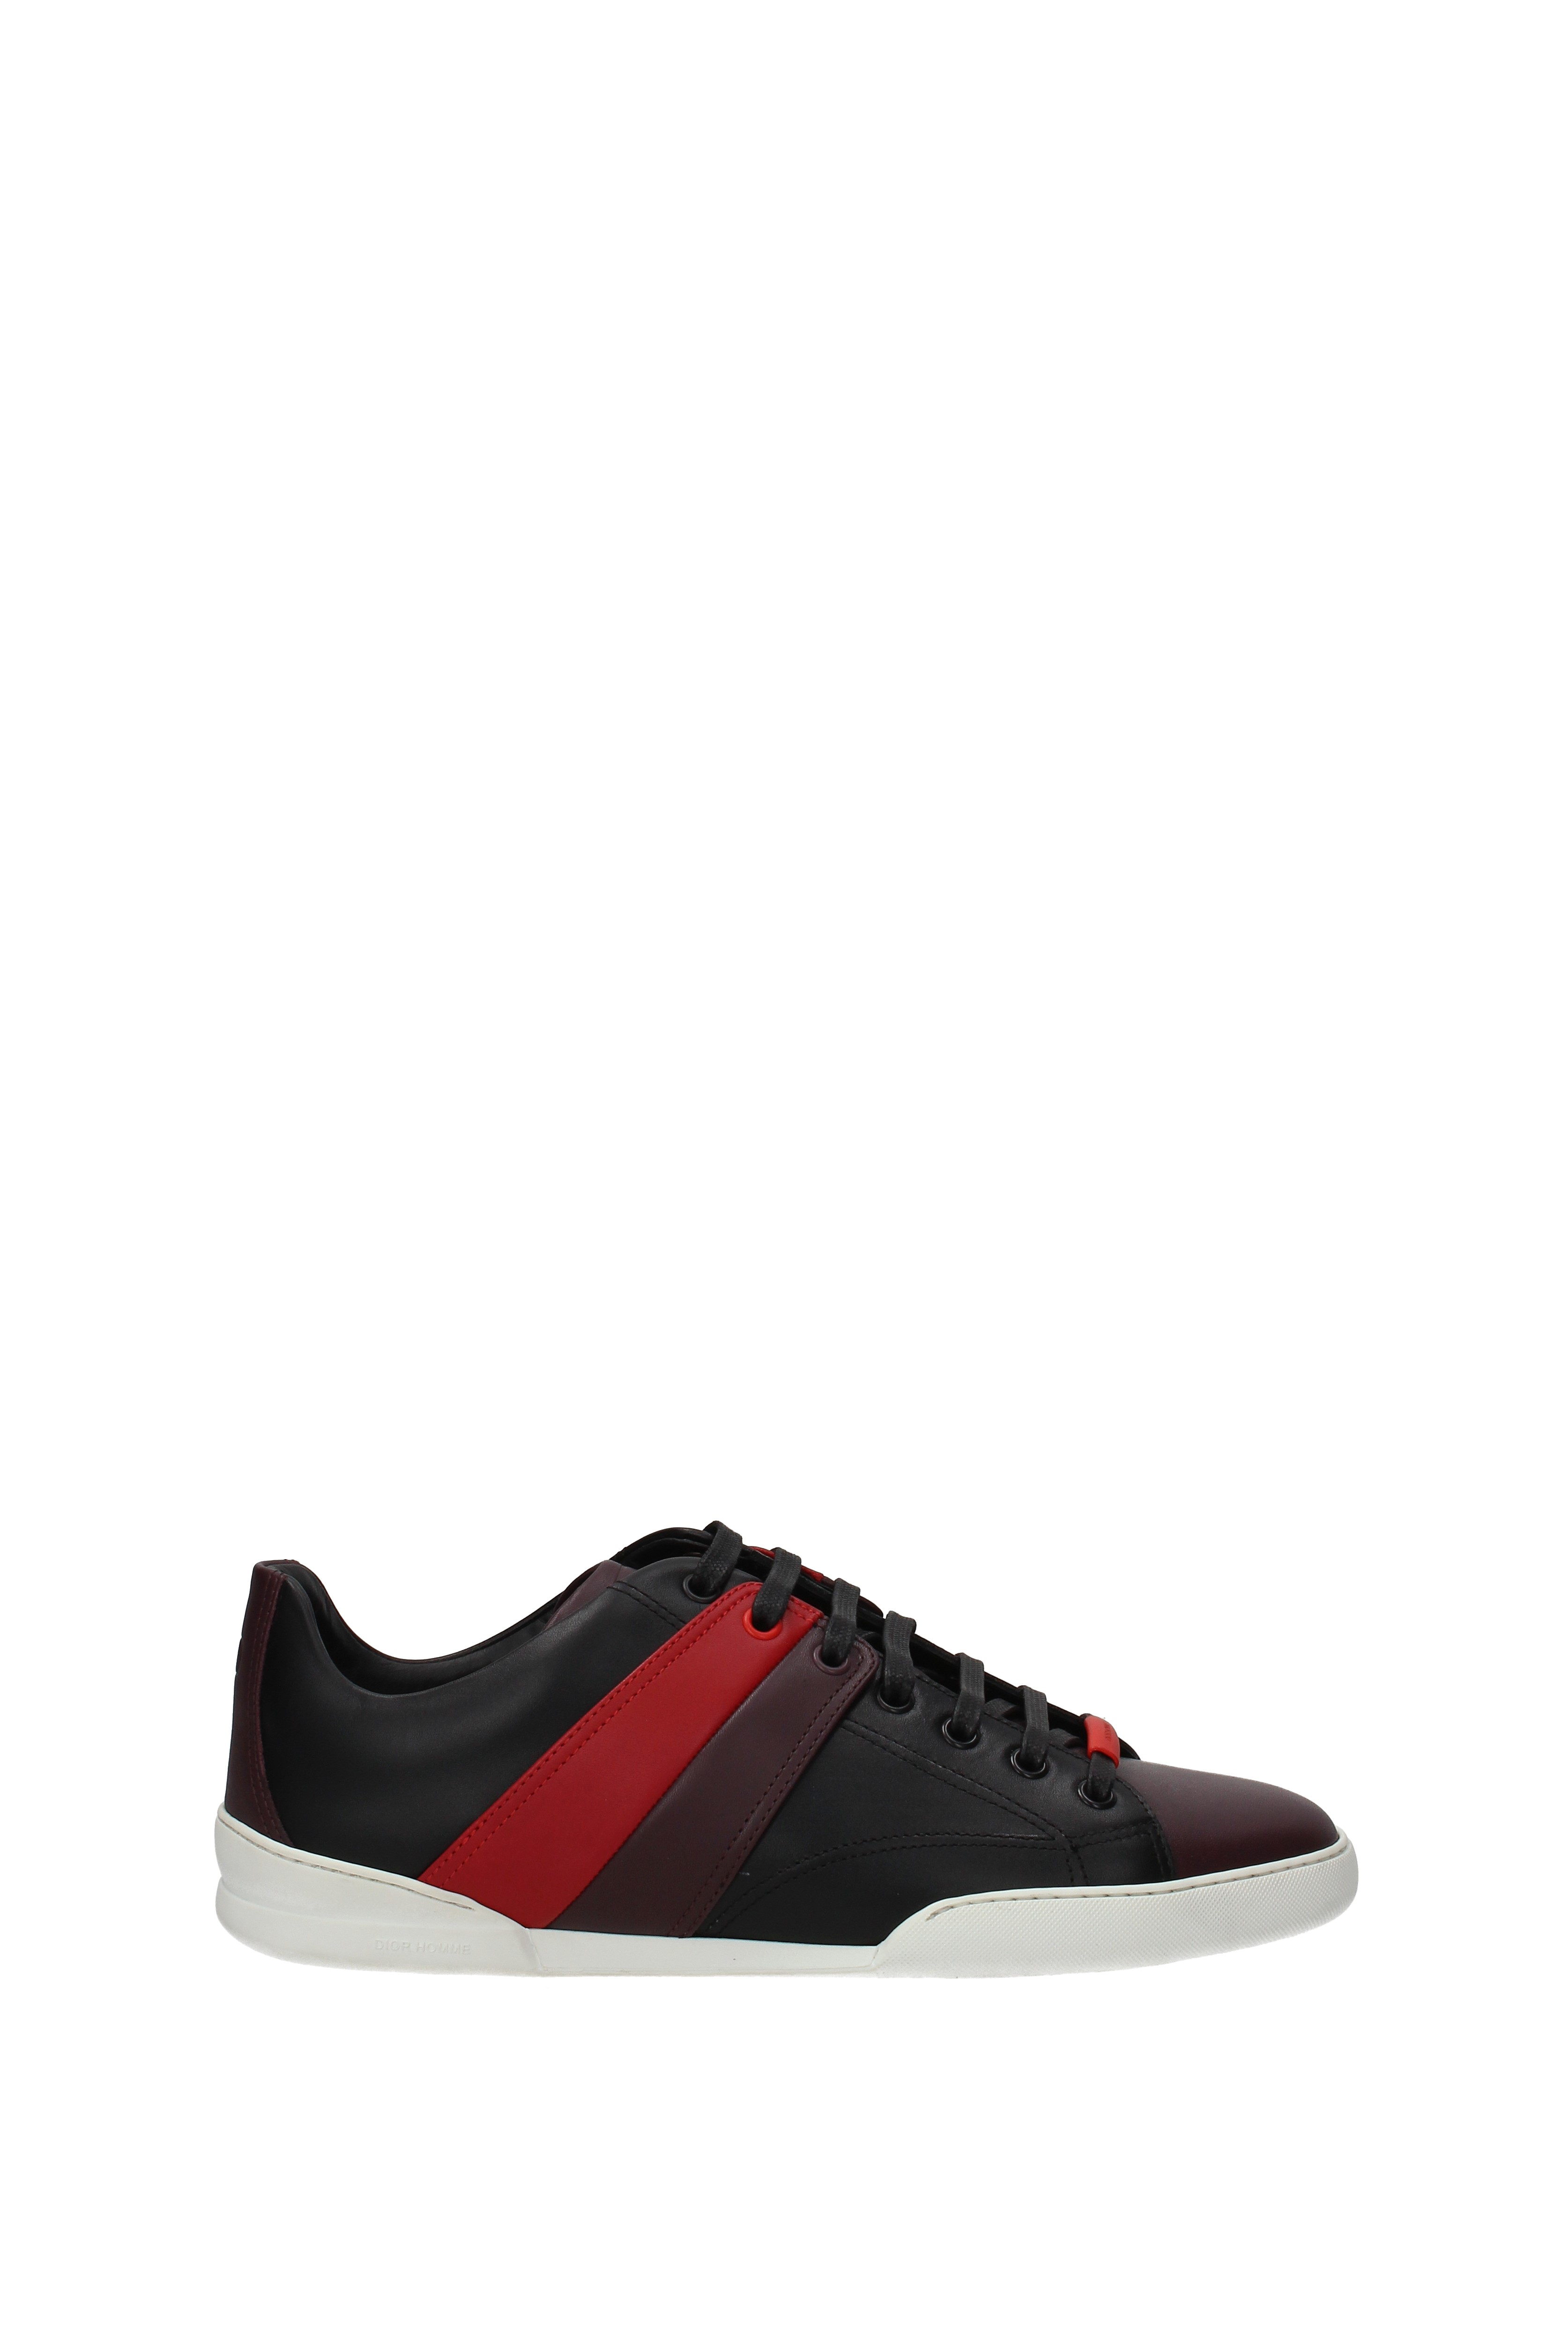 Sneakers Dior Christian Dior Sneakers Uomo - Pelle (3SN197XBH) 7d48af